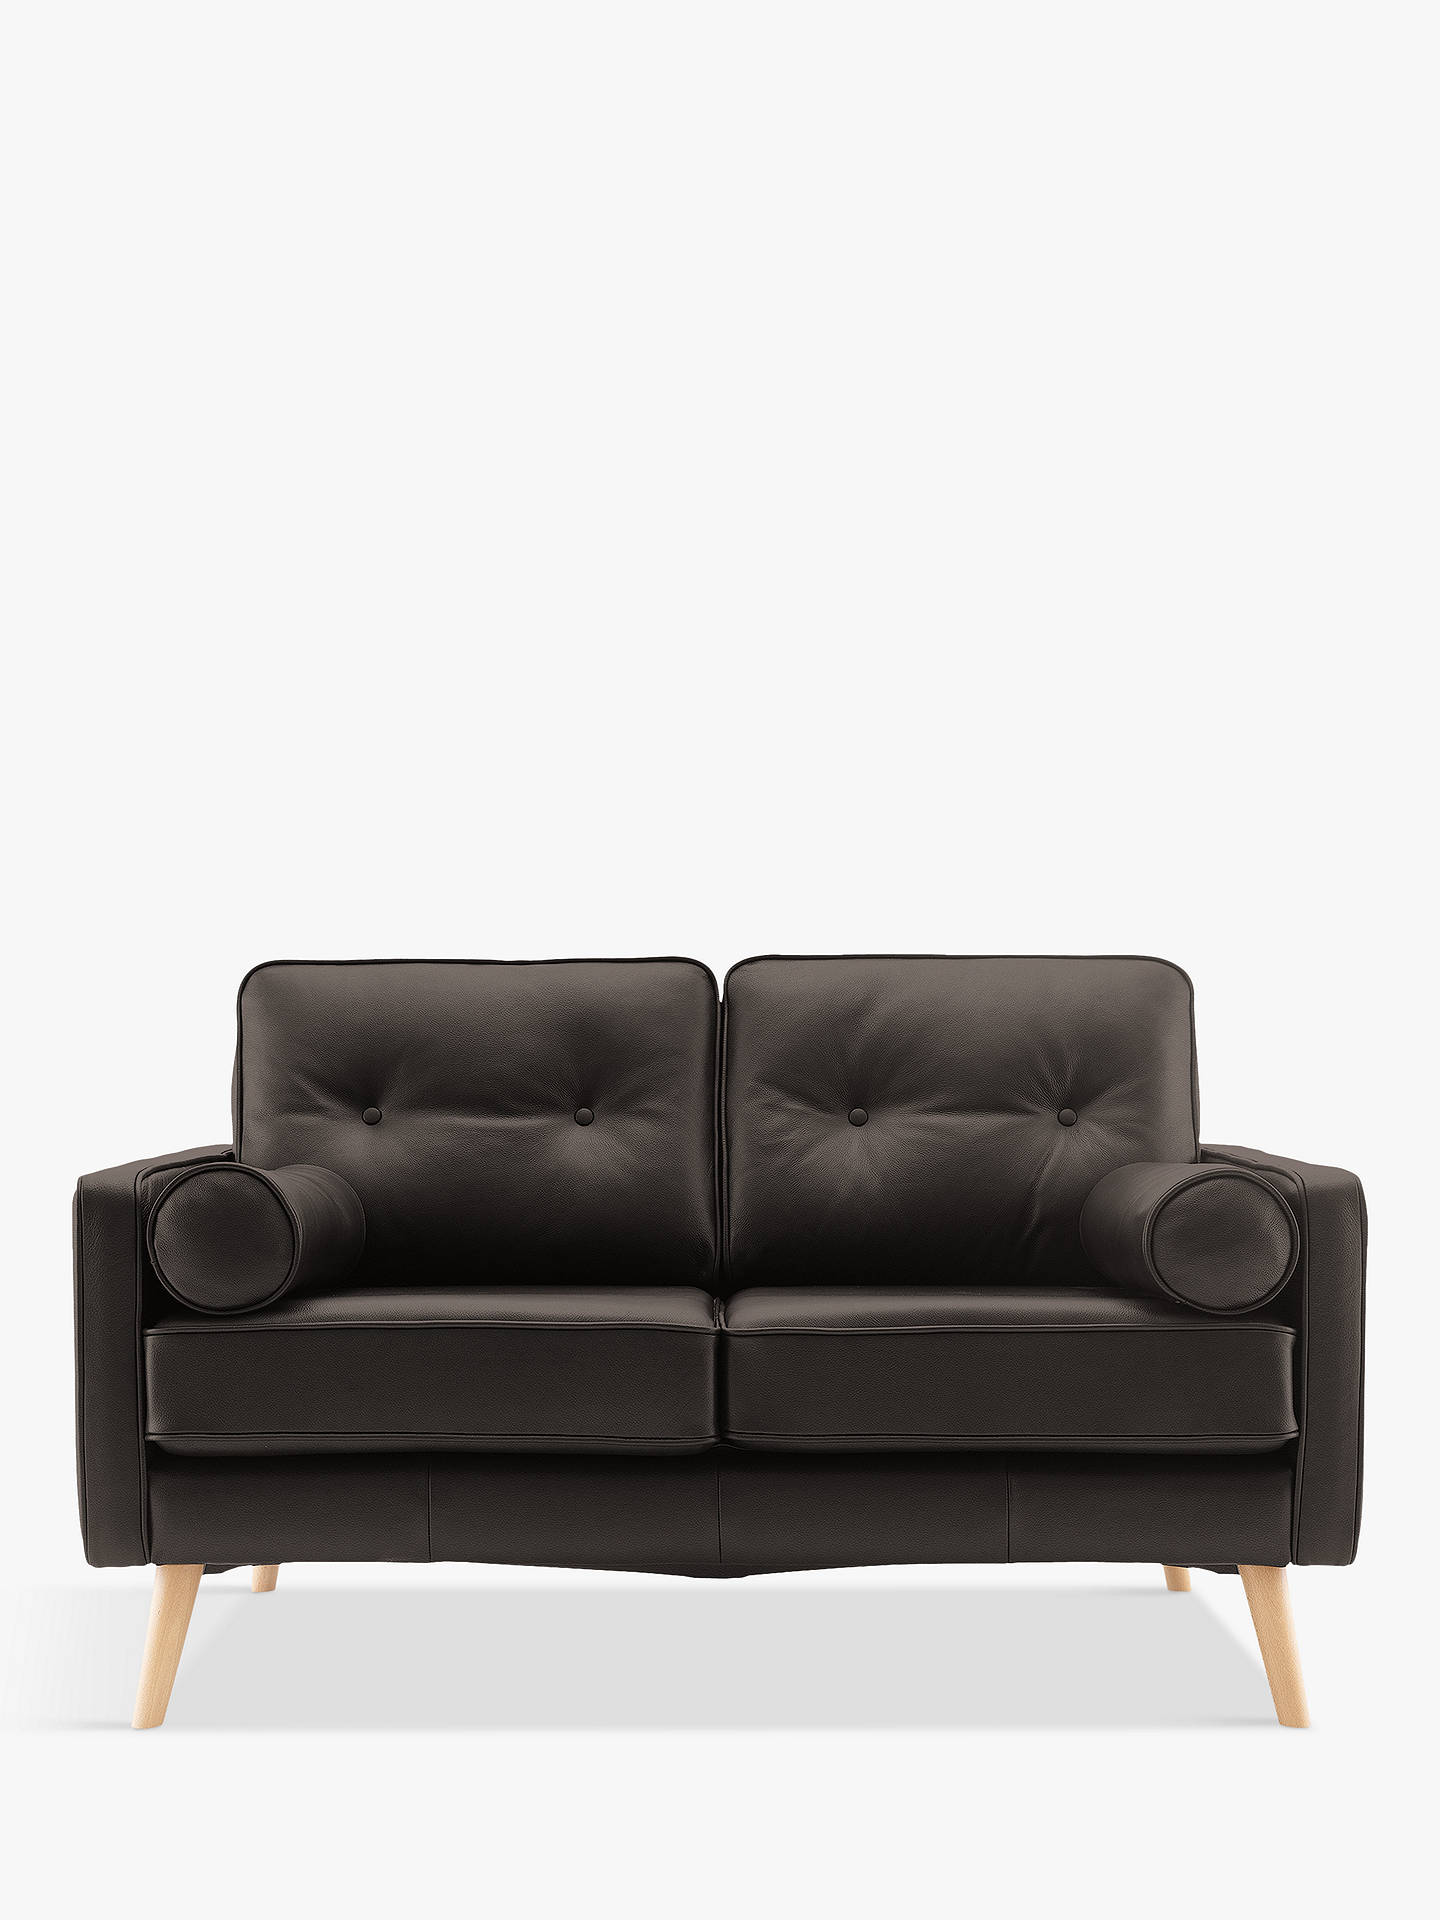 Pleasing G Plan Vintage The Sixty Five Small 2 Seater Leather Sofa Ibusinesslaw Wood Chair Design Ideas Ibusinesslaworg